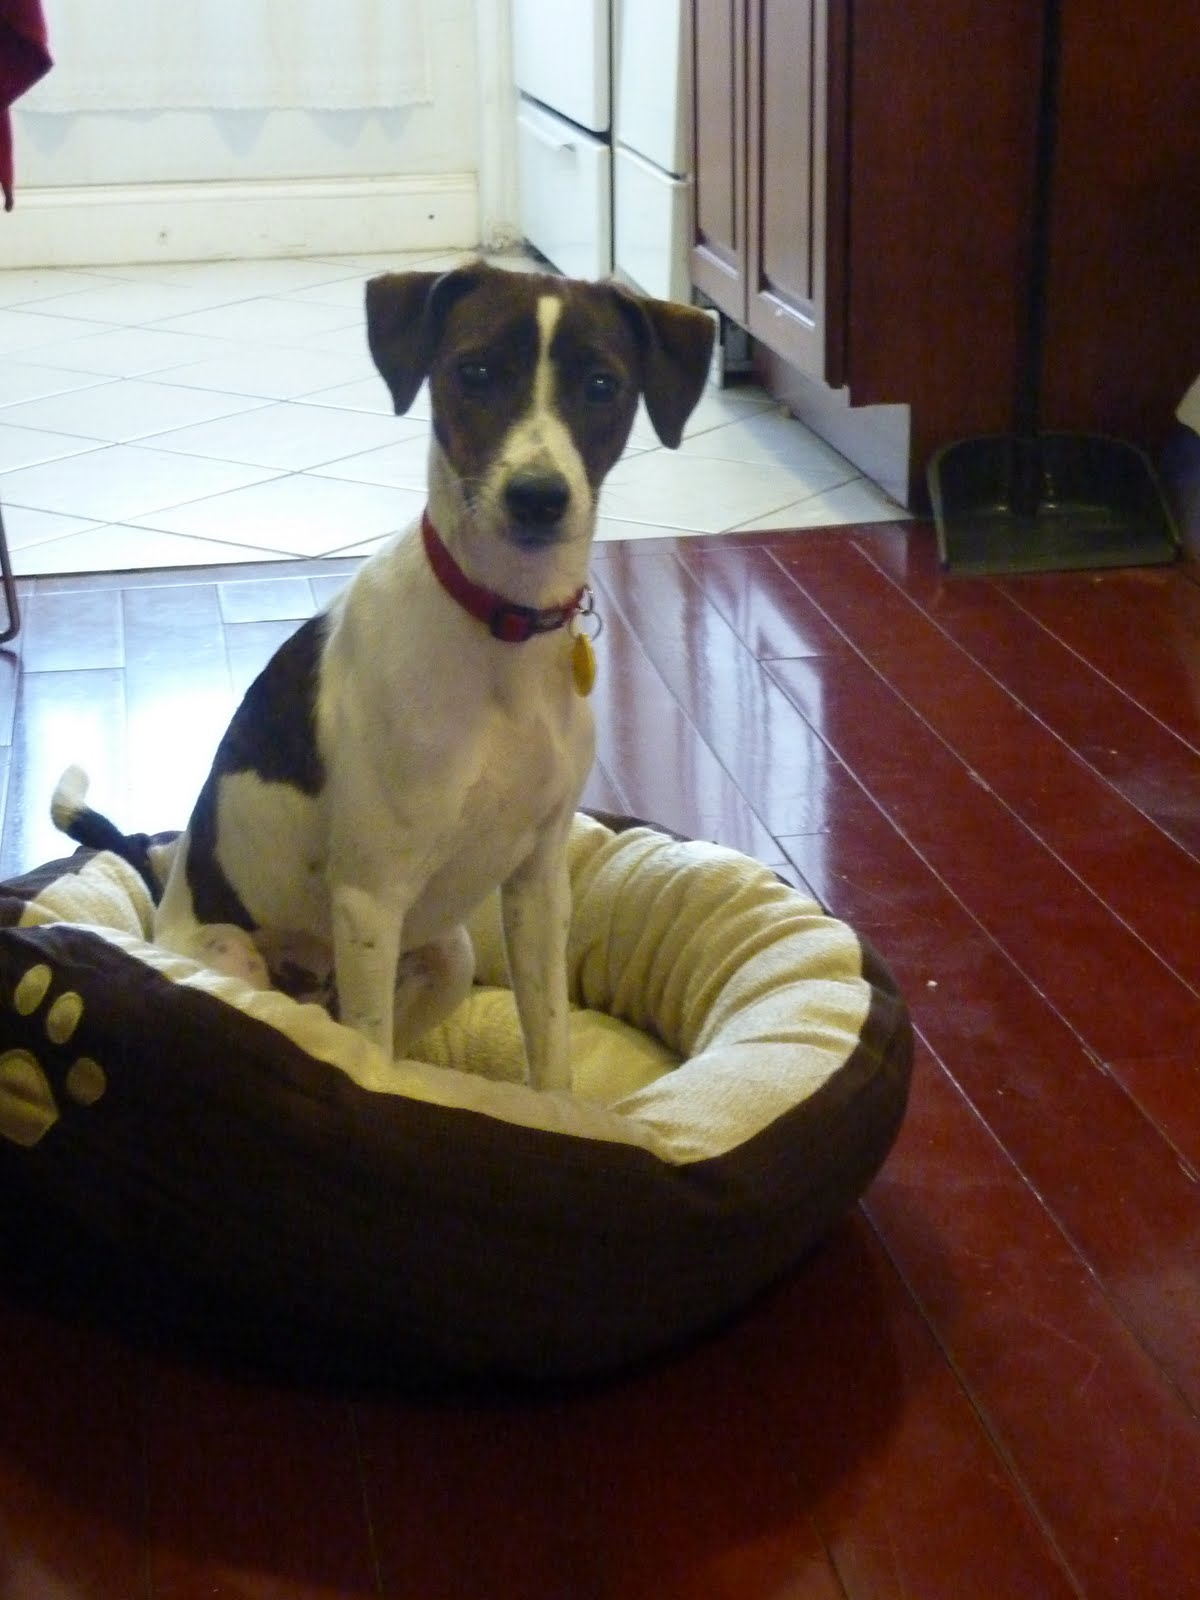 Whippet Terrier Mix http://look2beauty.blogspot.com/2010/10/busu-whippetjack-russell-terrier-beauty.html